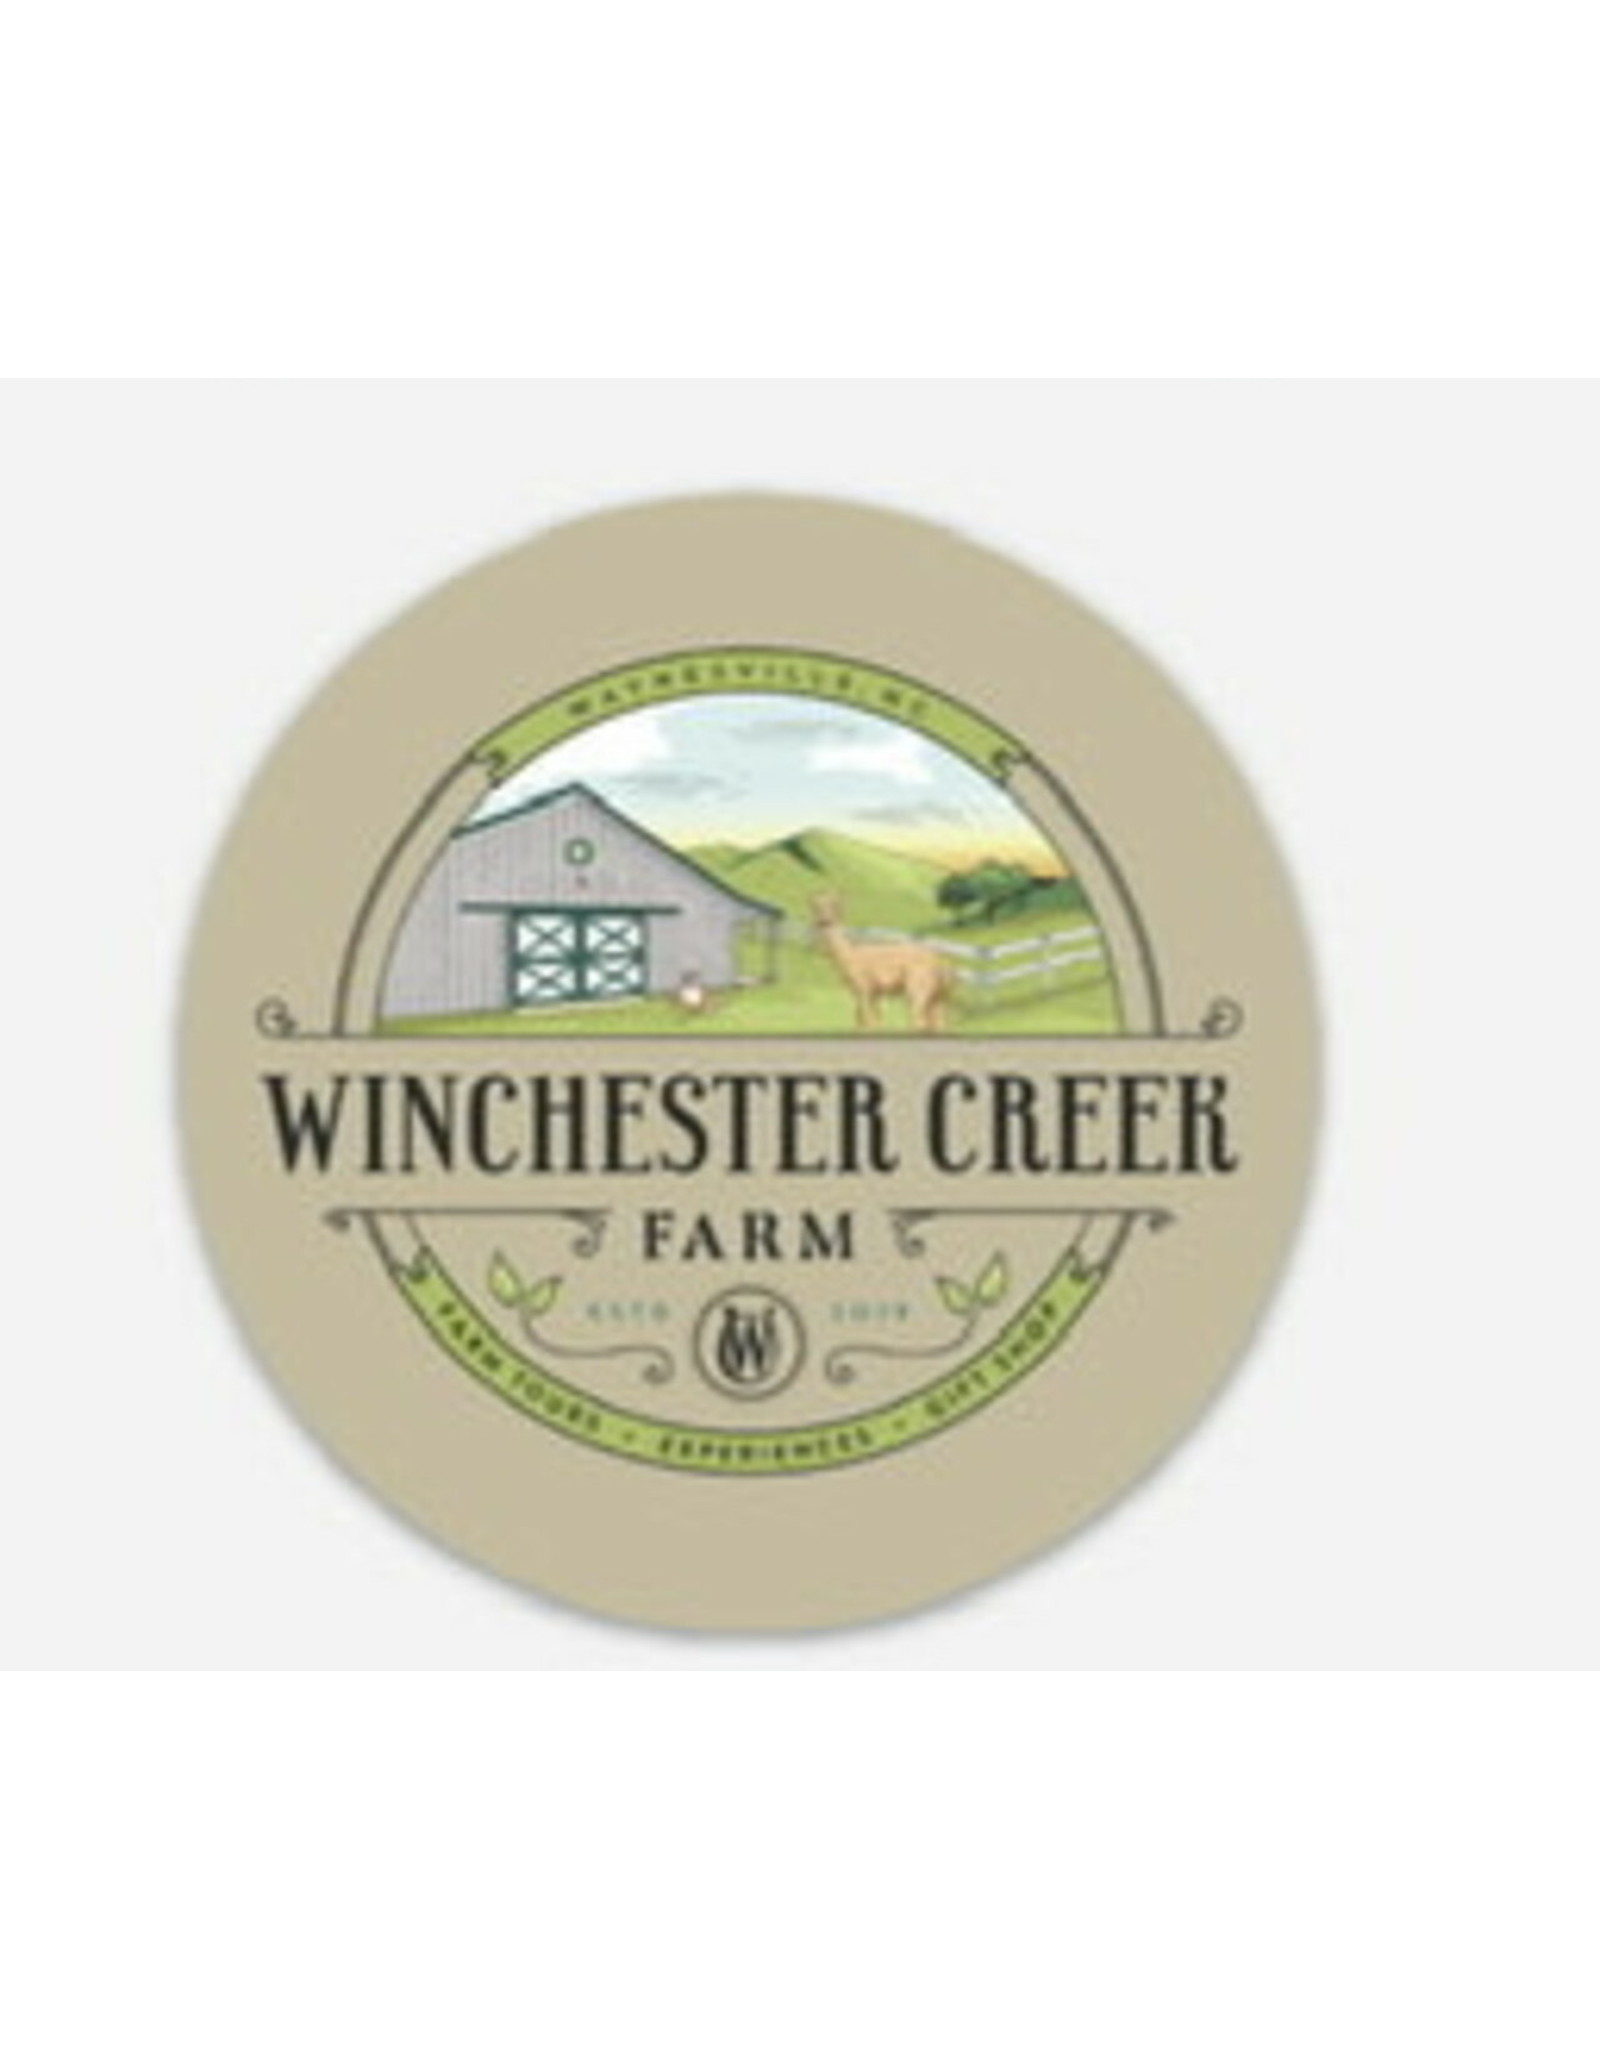 Set of 5 - Winchester Creek Farm Vinyl Stickers